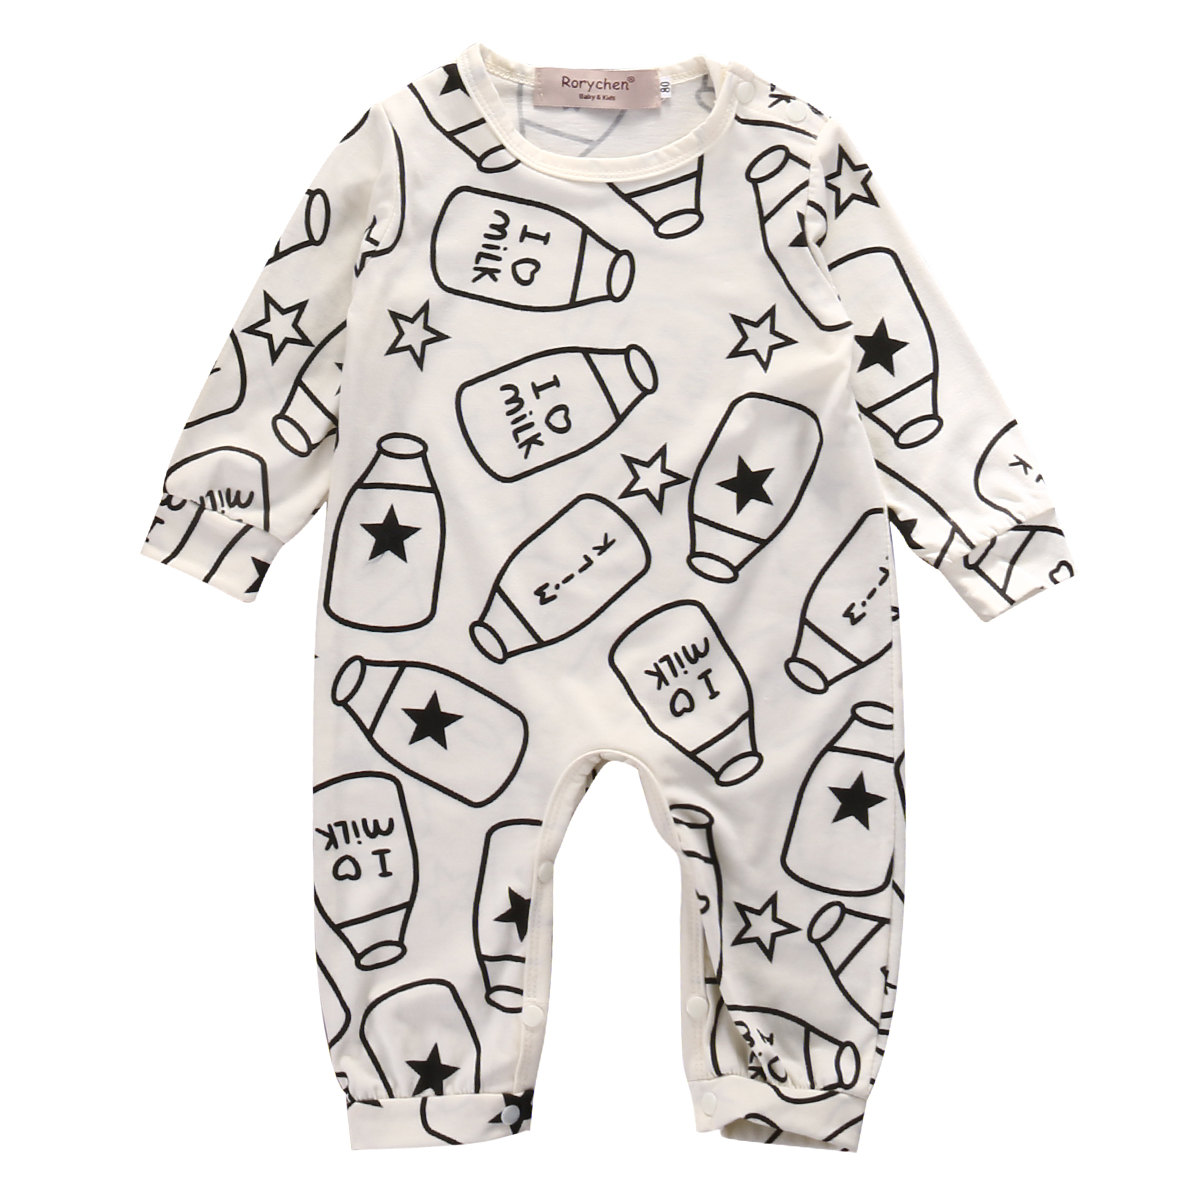 Hot sales Newborn Baby Boys Girls Clothes Kids Long Sleeve Romper Jumpsuit Outfits Baby Clothing